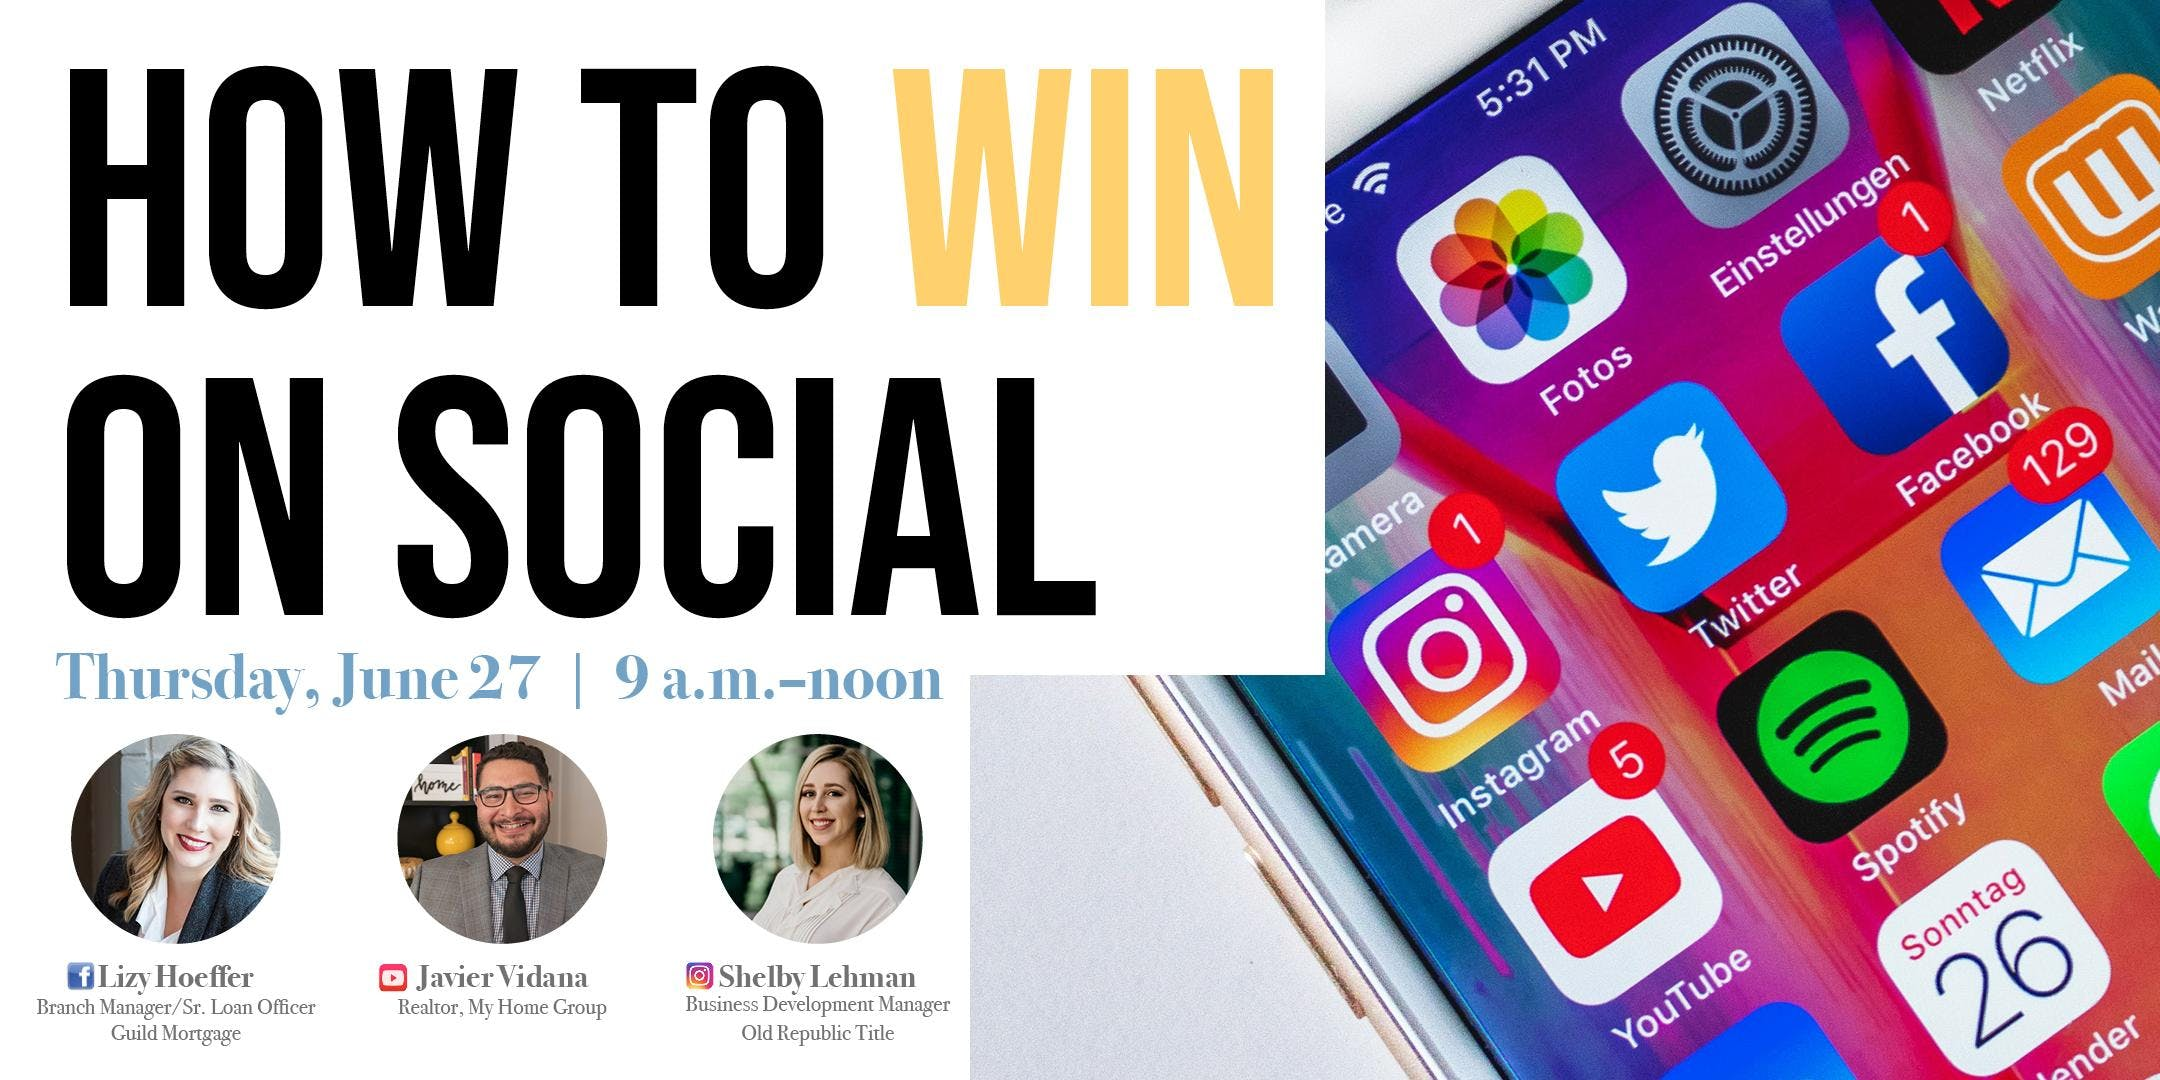 How to Win on Social - Learn how to get leads, build your brand, and connect with clients